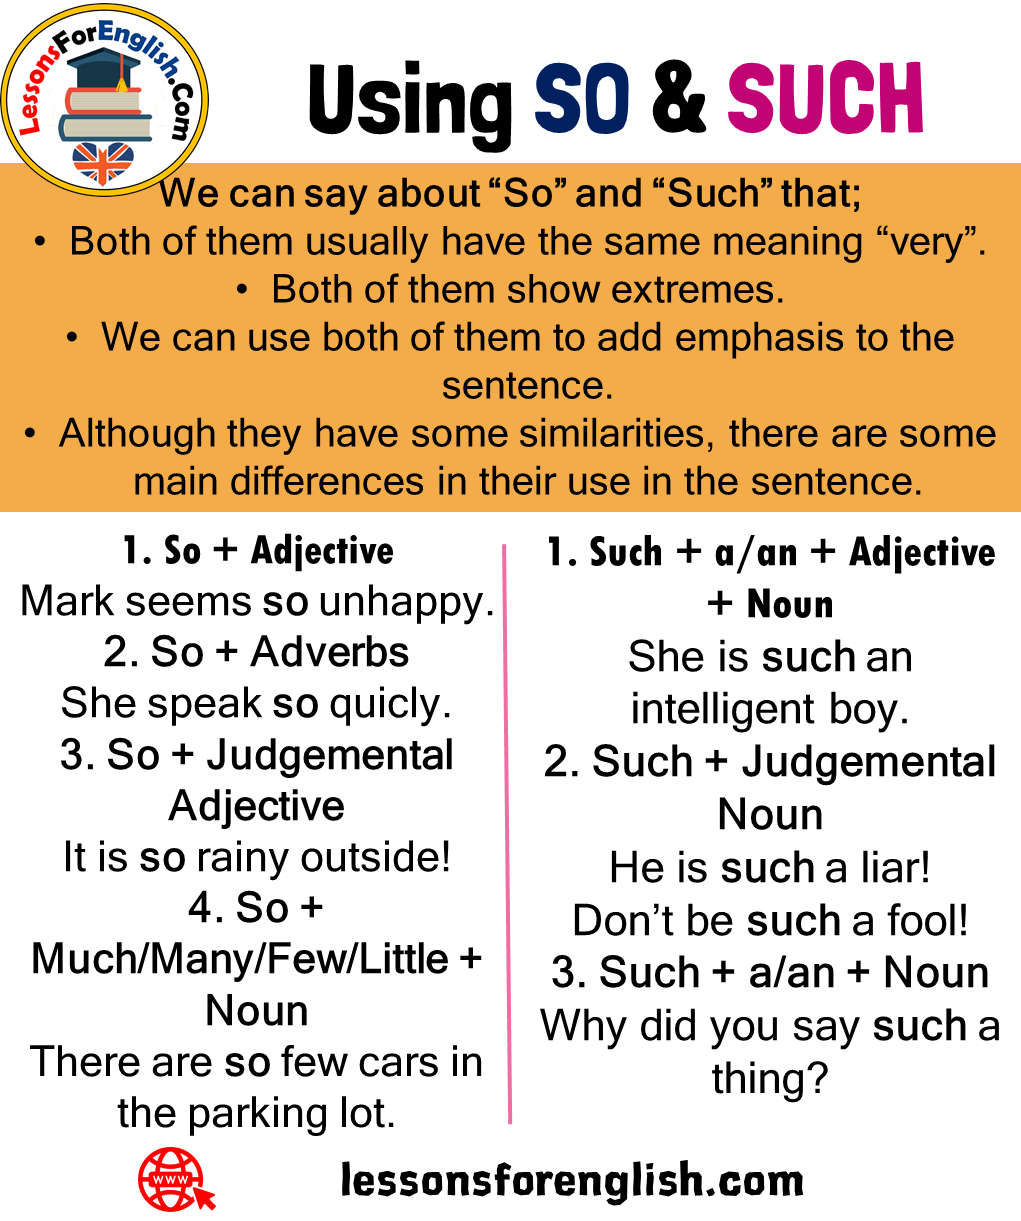 Using SO and SUCH, Definition and Examples - Lessons For